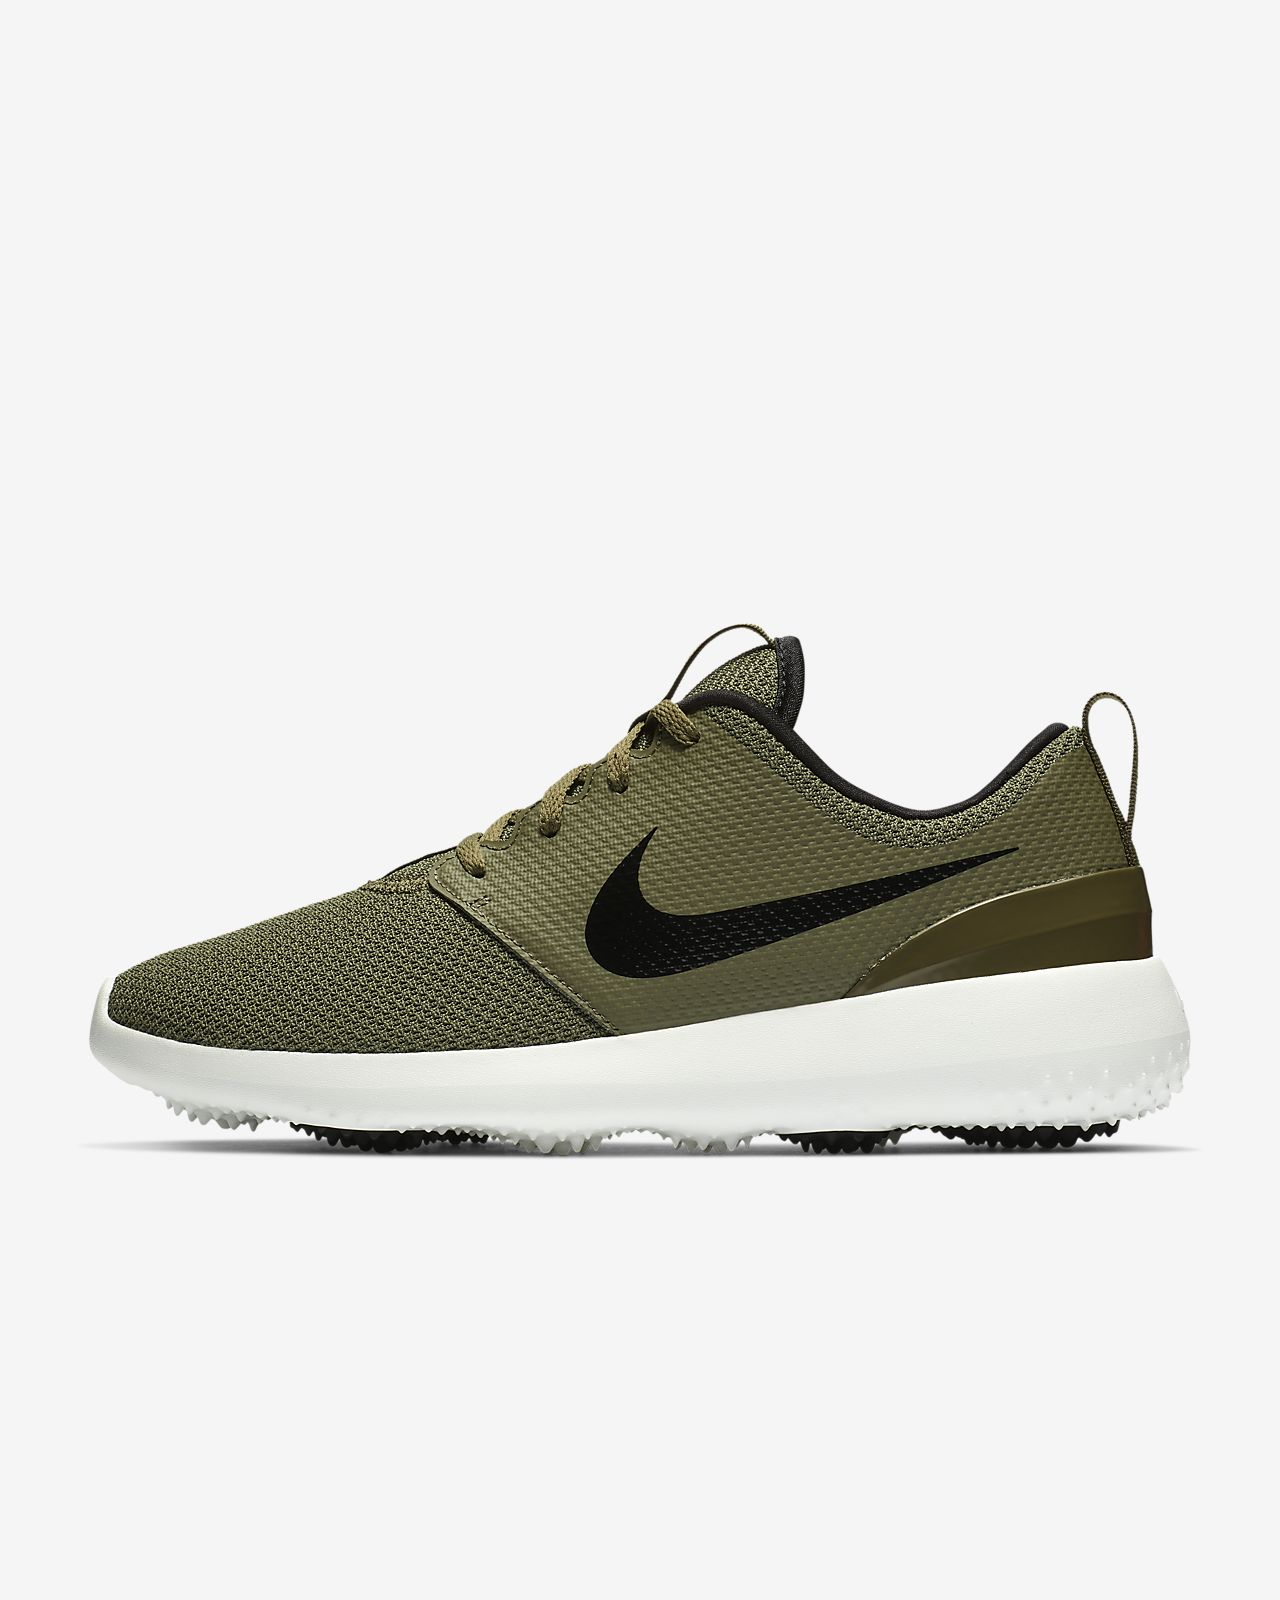 best website 93843 8eed9 ... Chaussure de golf Nike Roshe G pour Homme